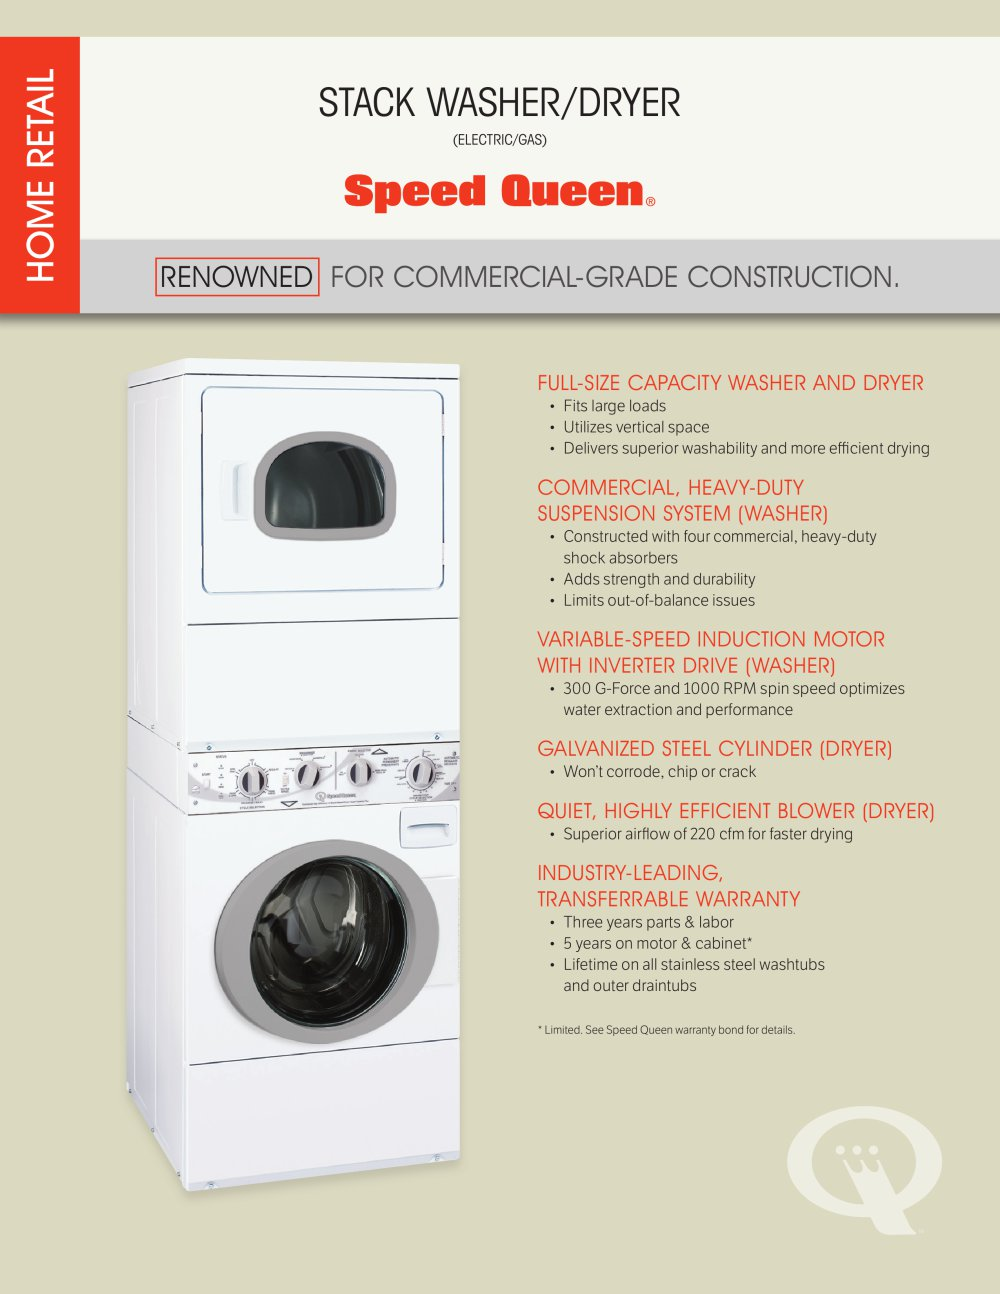 Frontload Stack Washer Dryer 1 2 Pages